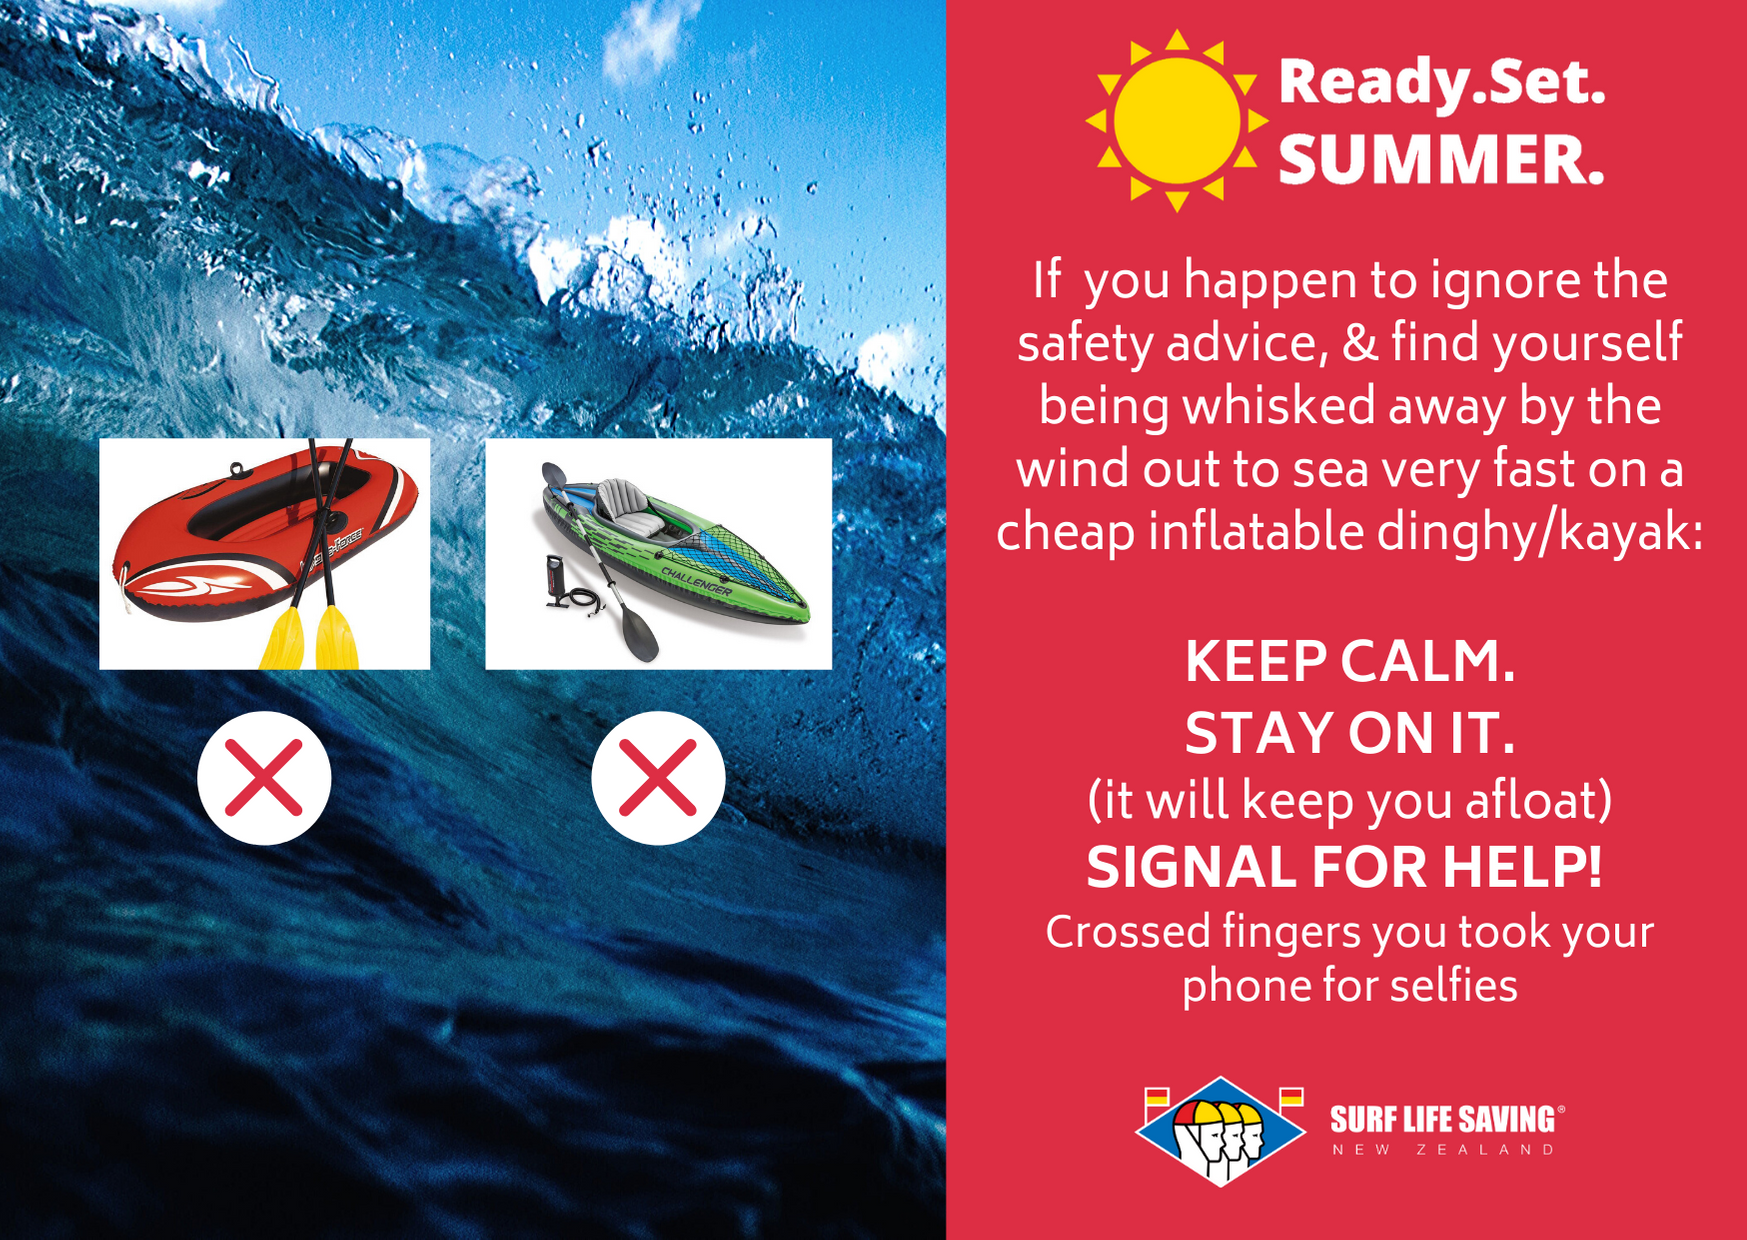 Inflatable Kayaks and Dingies ADVICE